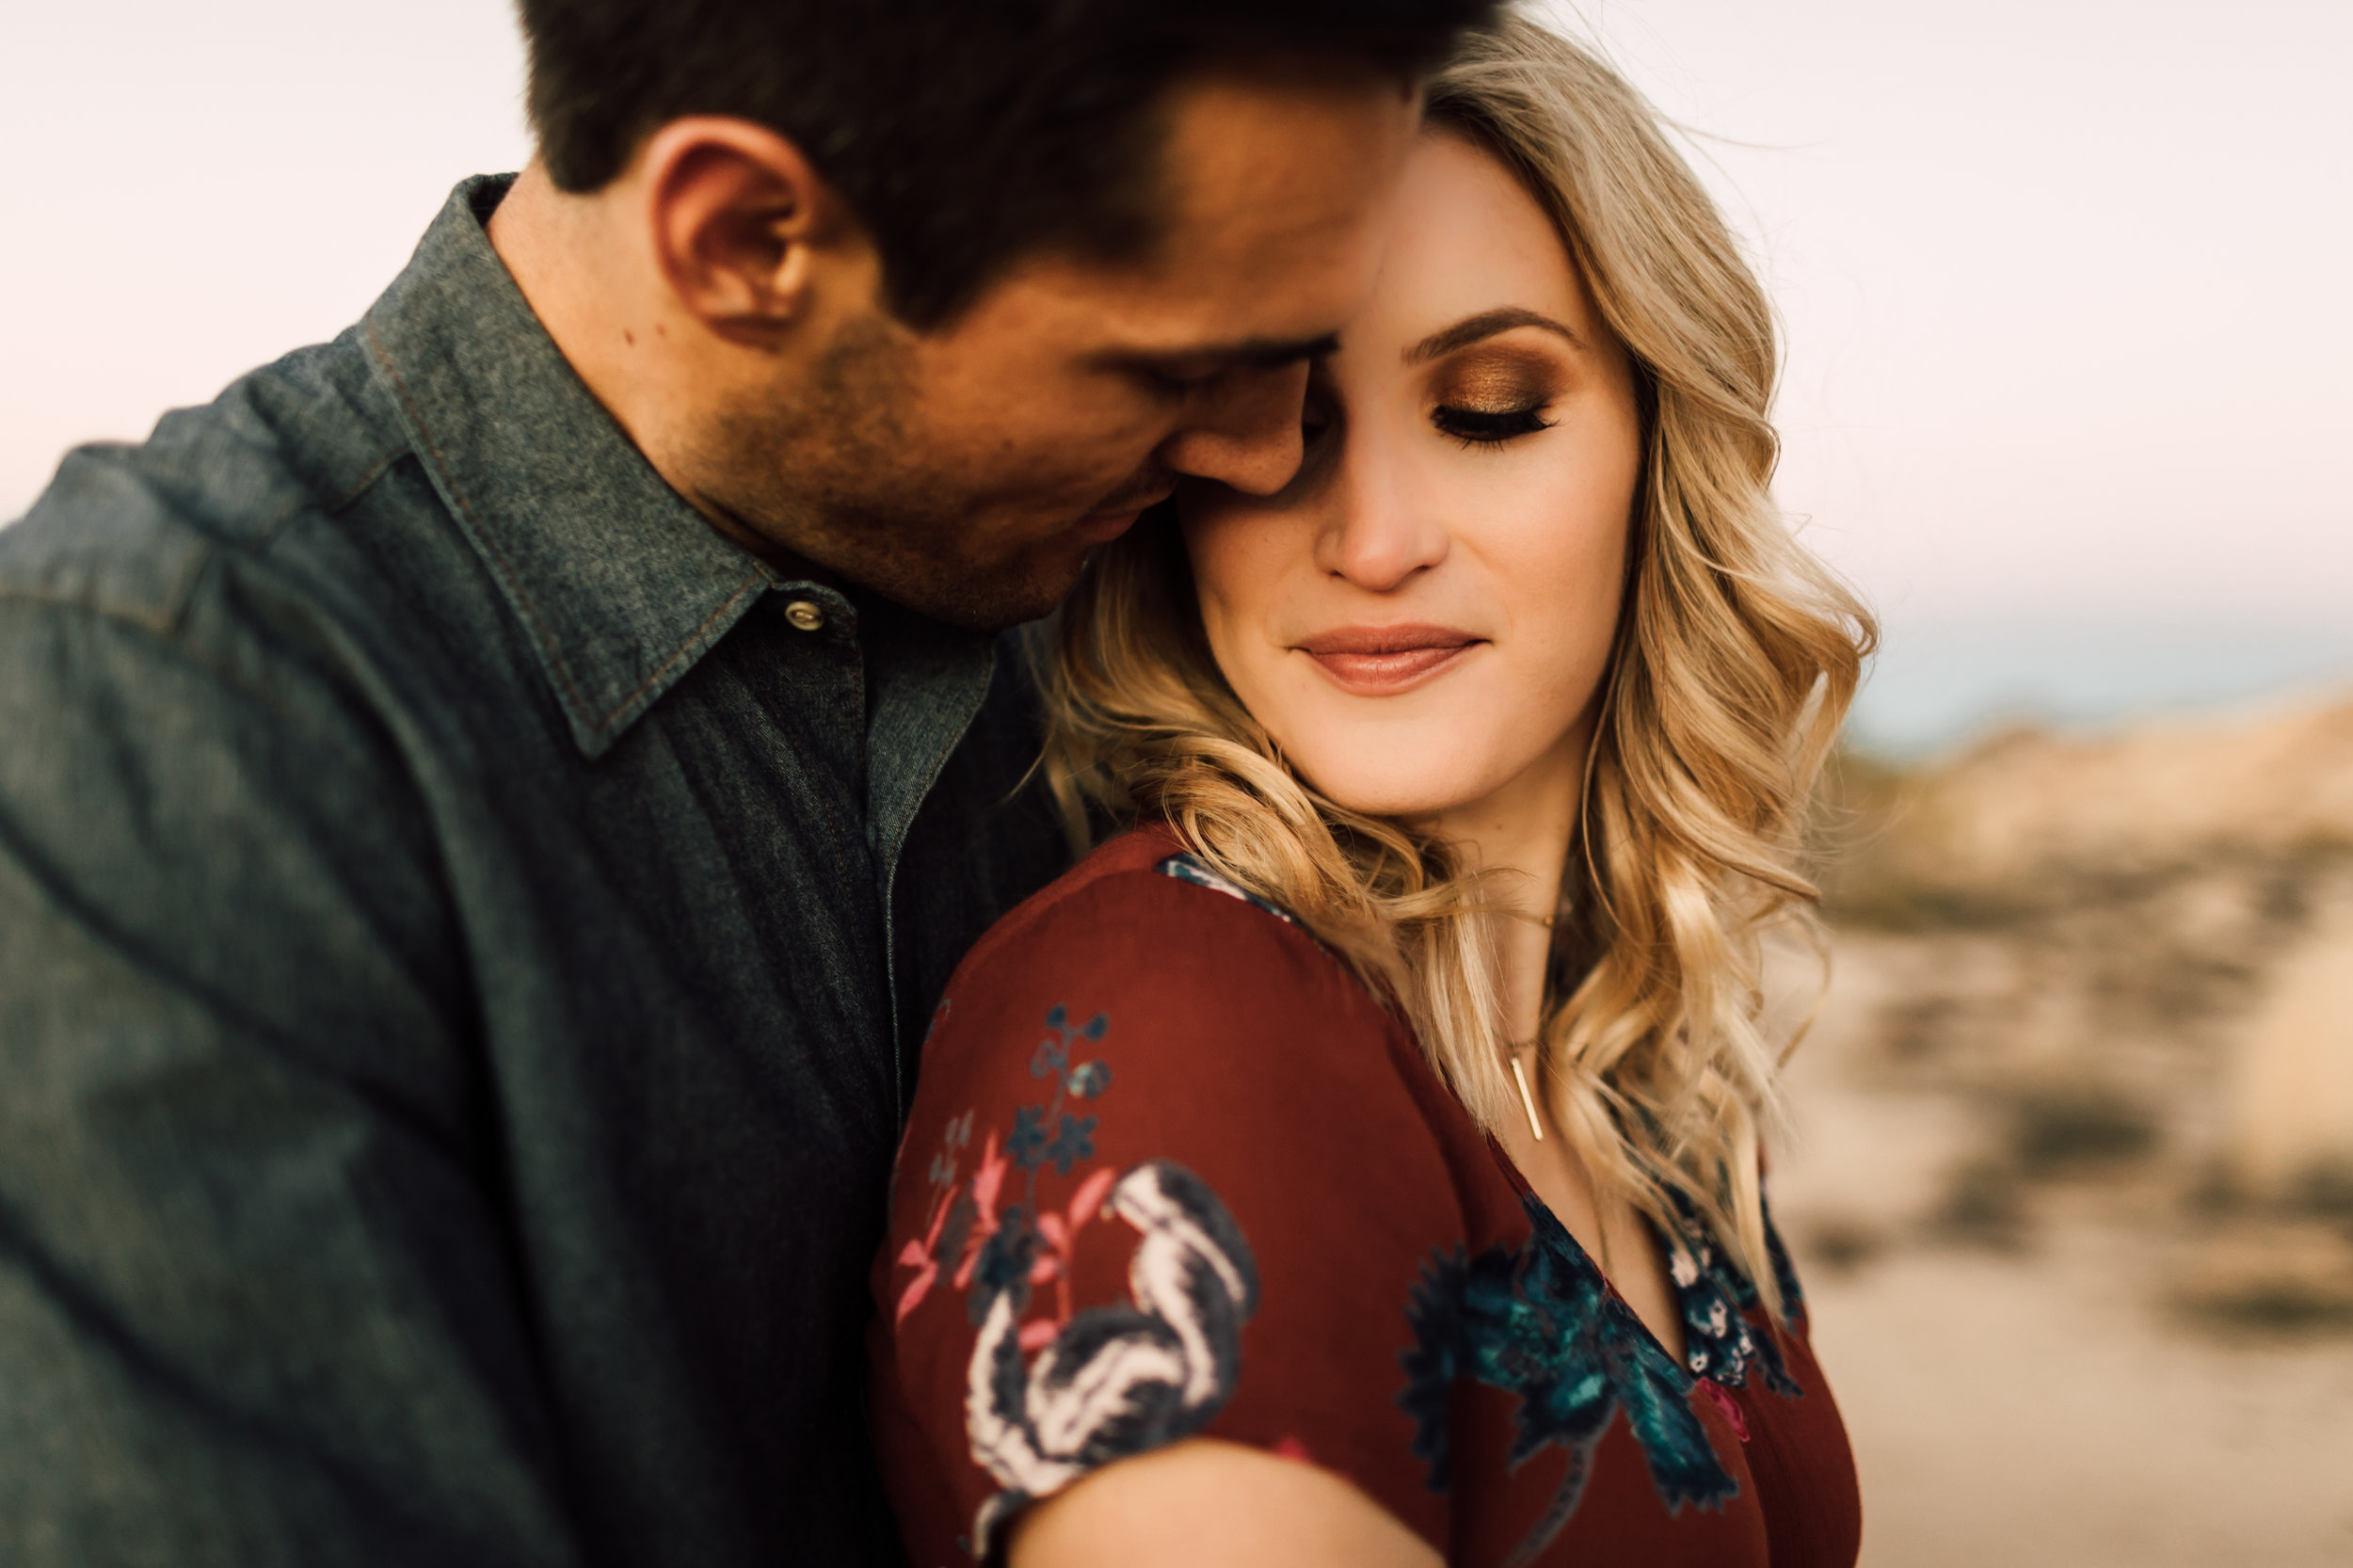 miranda+taylorengaged-142.jpg